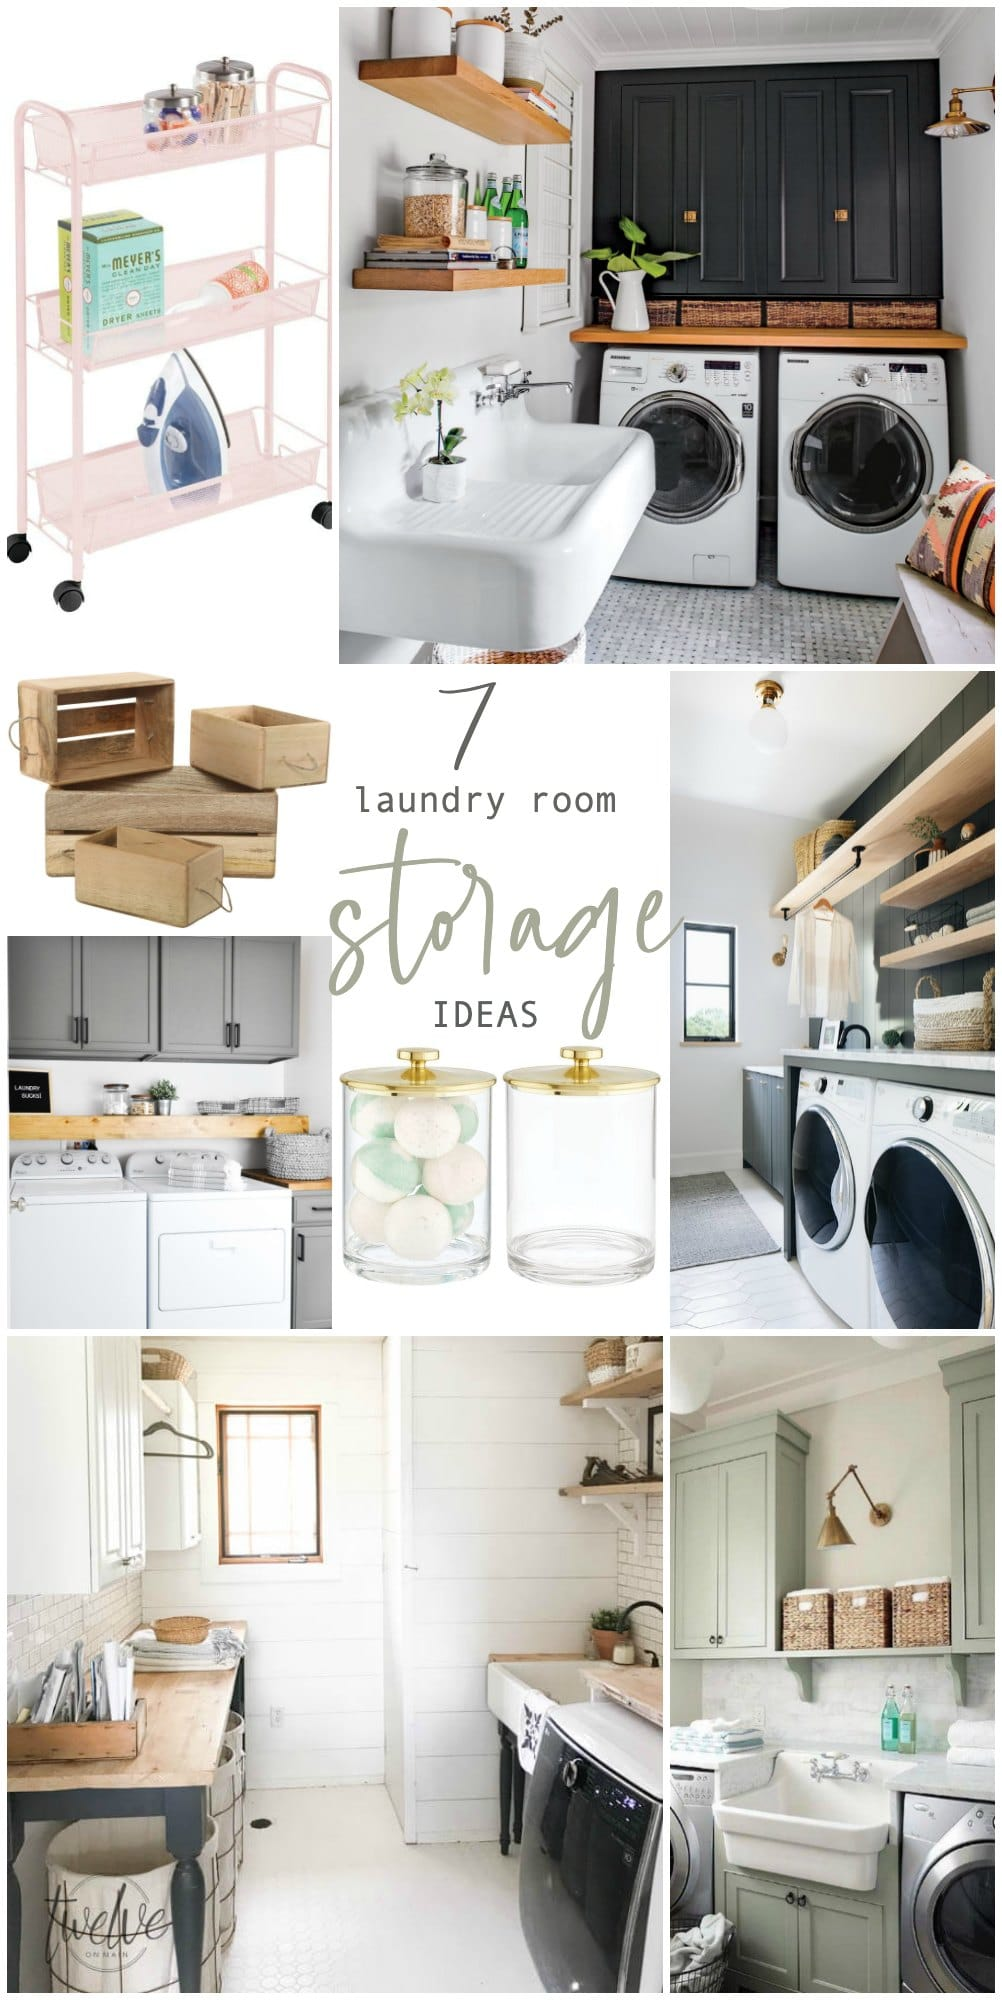 Seven Genius Ways to Bring Storage into a Small Laundry Room! Pack a lot of style and storage into a small space with these inspiring laundry room storage ideas.